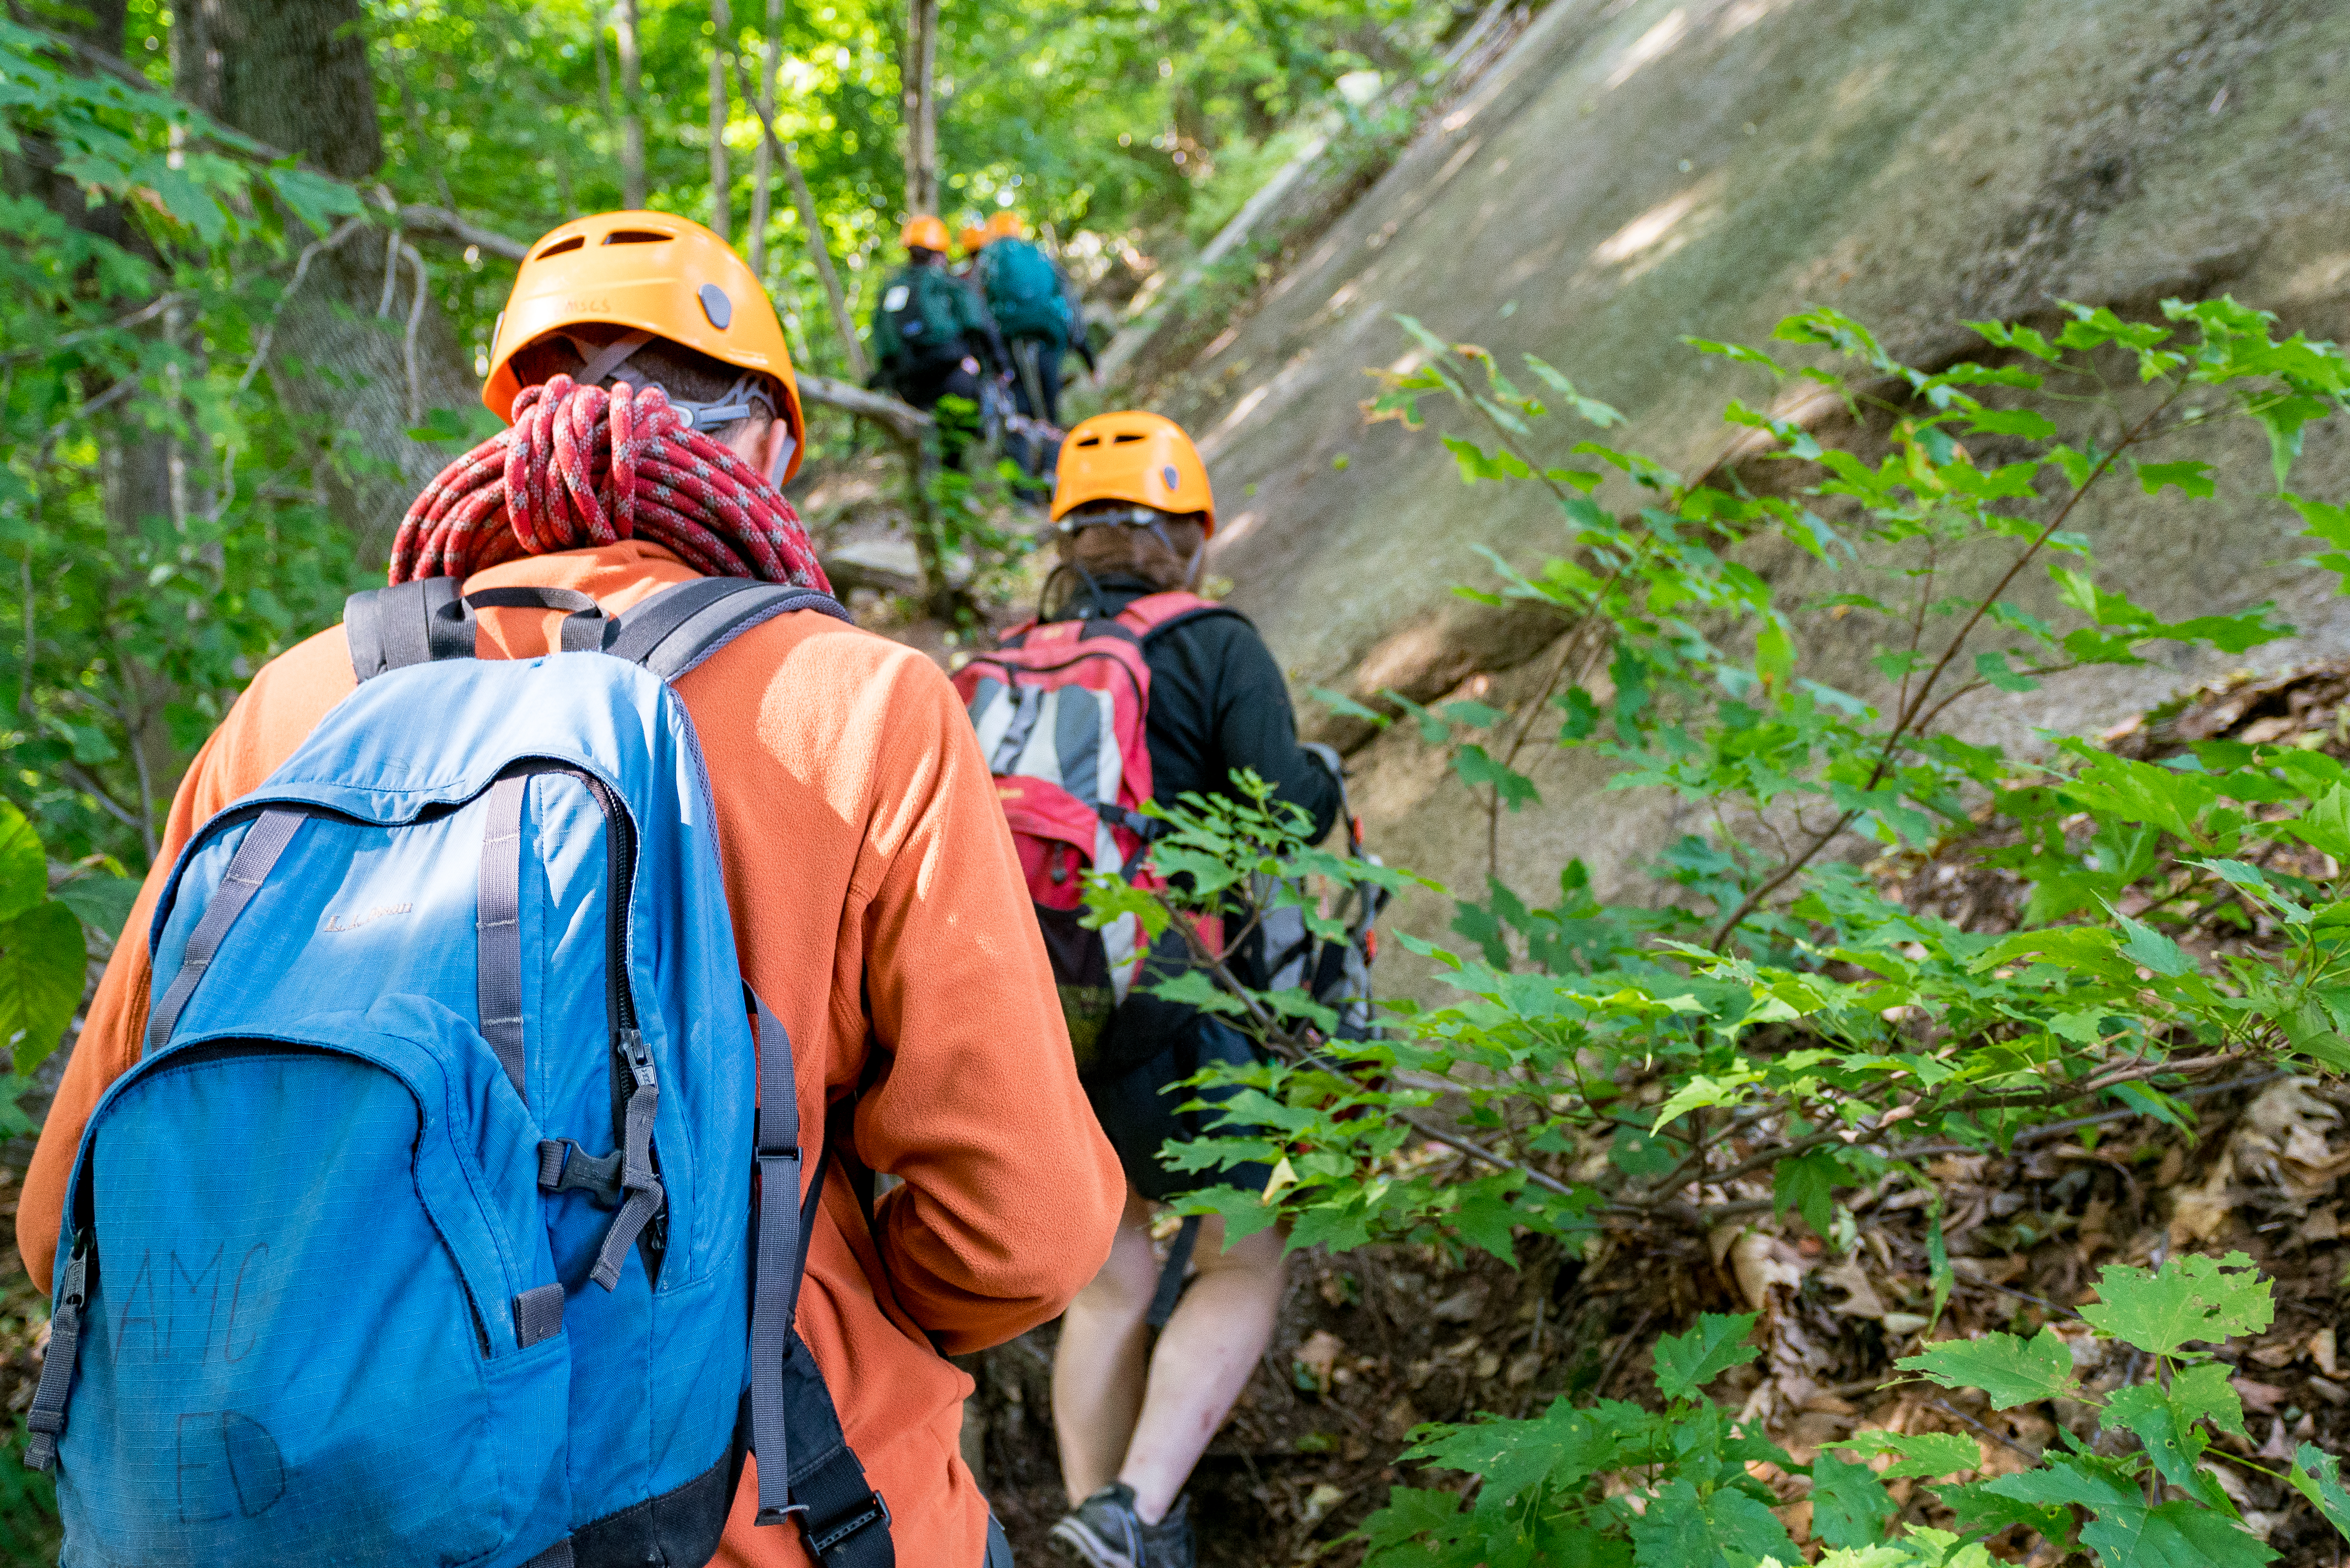 Summer Program - Hiking | AMC's Teen Wilderness Adventures: 10-Day Rock Climbing and Backpacking Adventure (Ages 14-16)